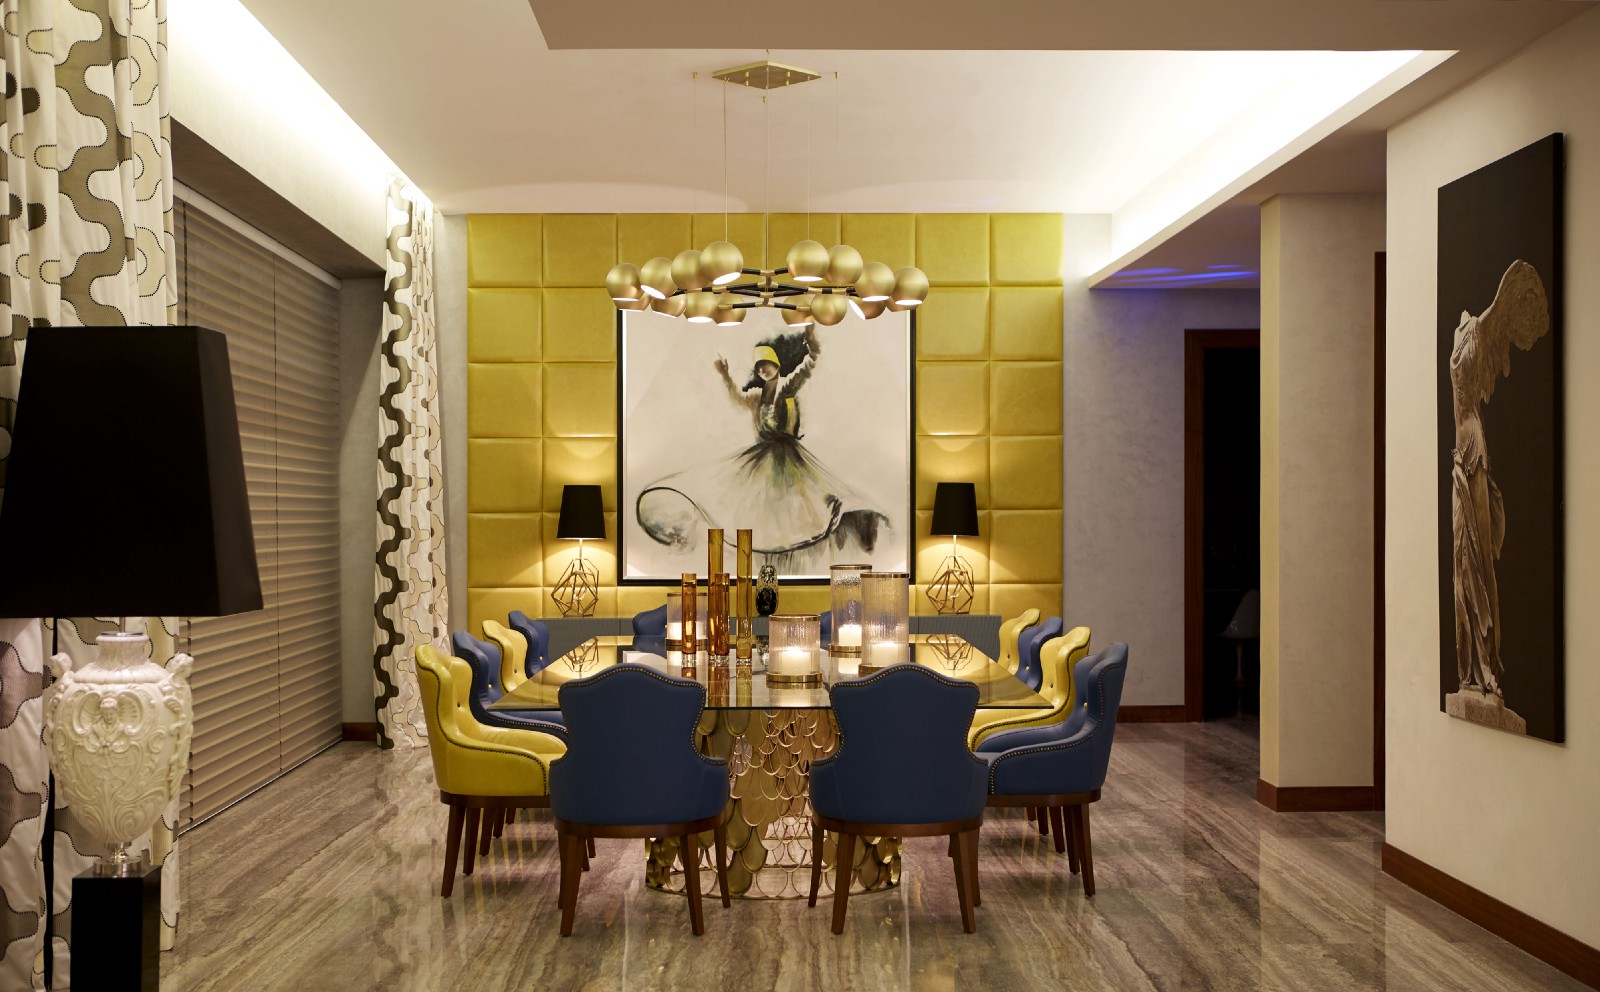 Get To Know These Fabulous Lamps And Be Inspired With 2016 Dining Room Lighting Ideas